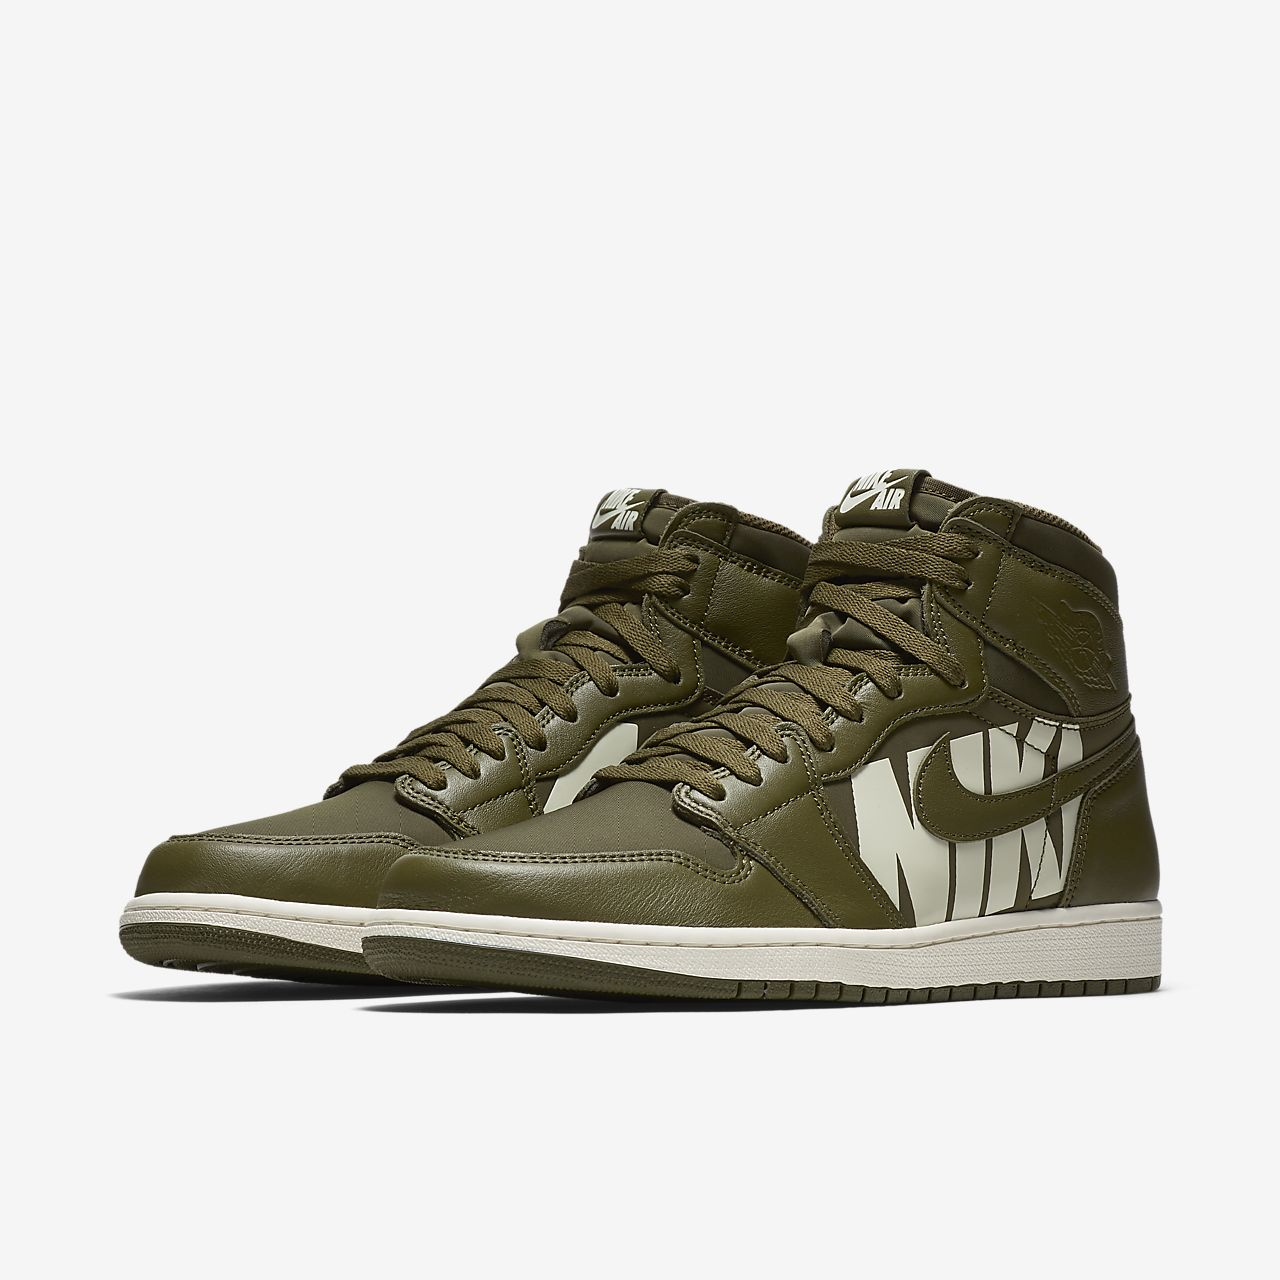 new styles becc4 6c5d6 ... Air Jordan 1 Retro High OG Shoe